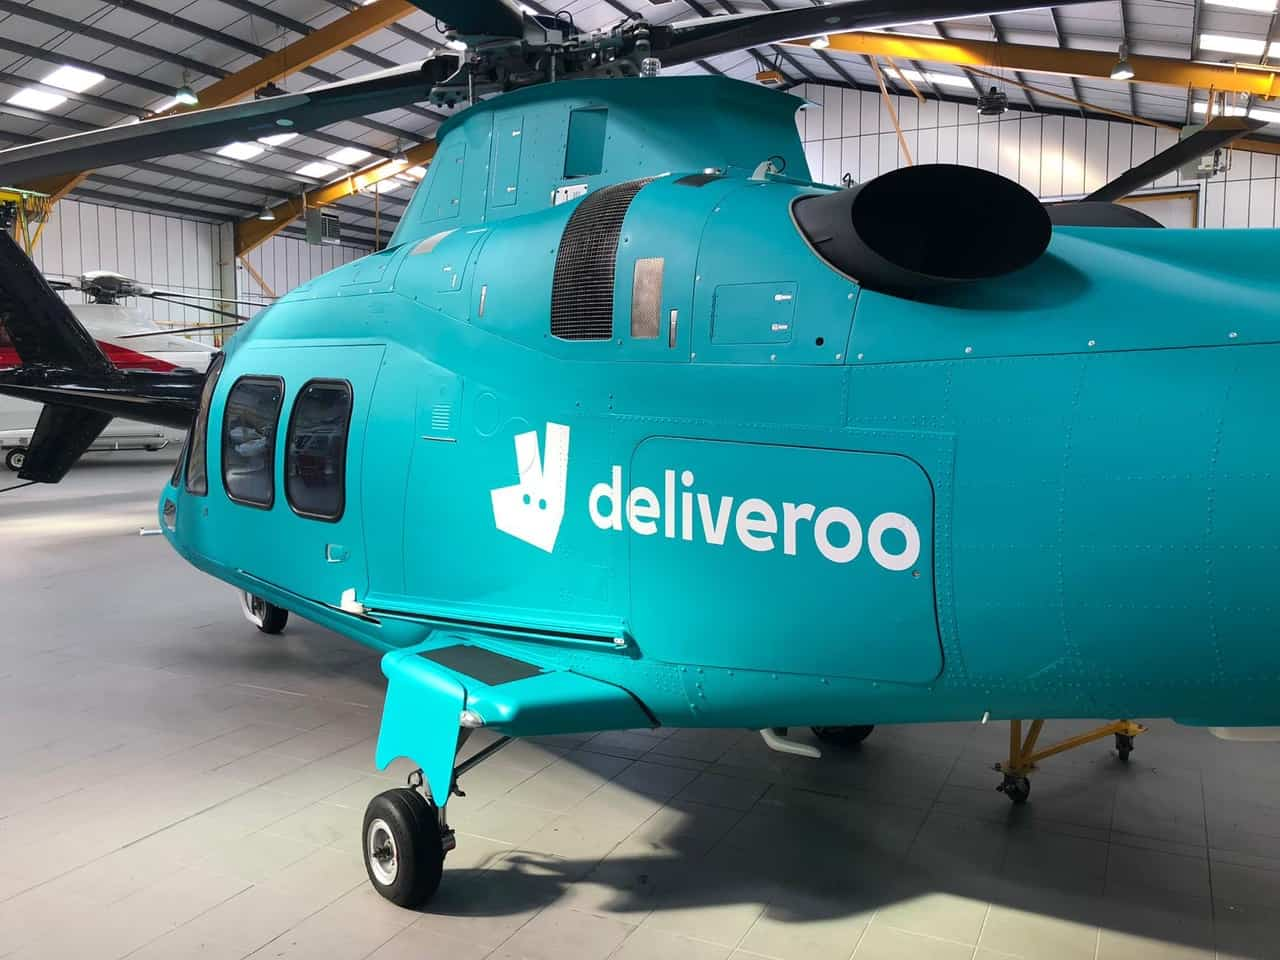 Charter A - Deliveroo - Roocopter - London Diners